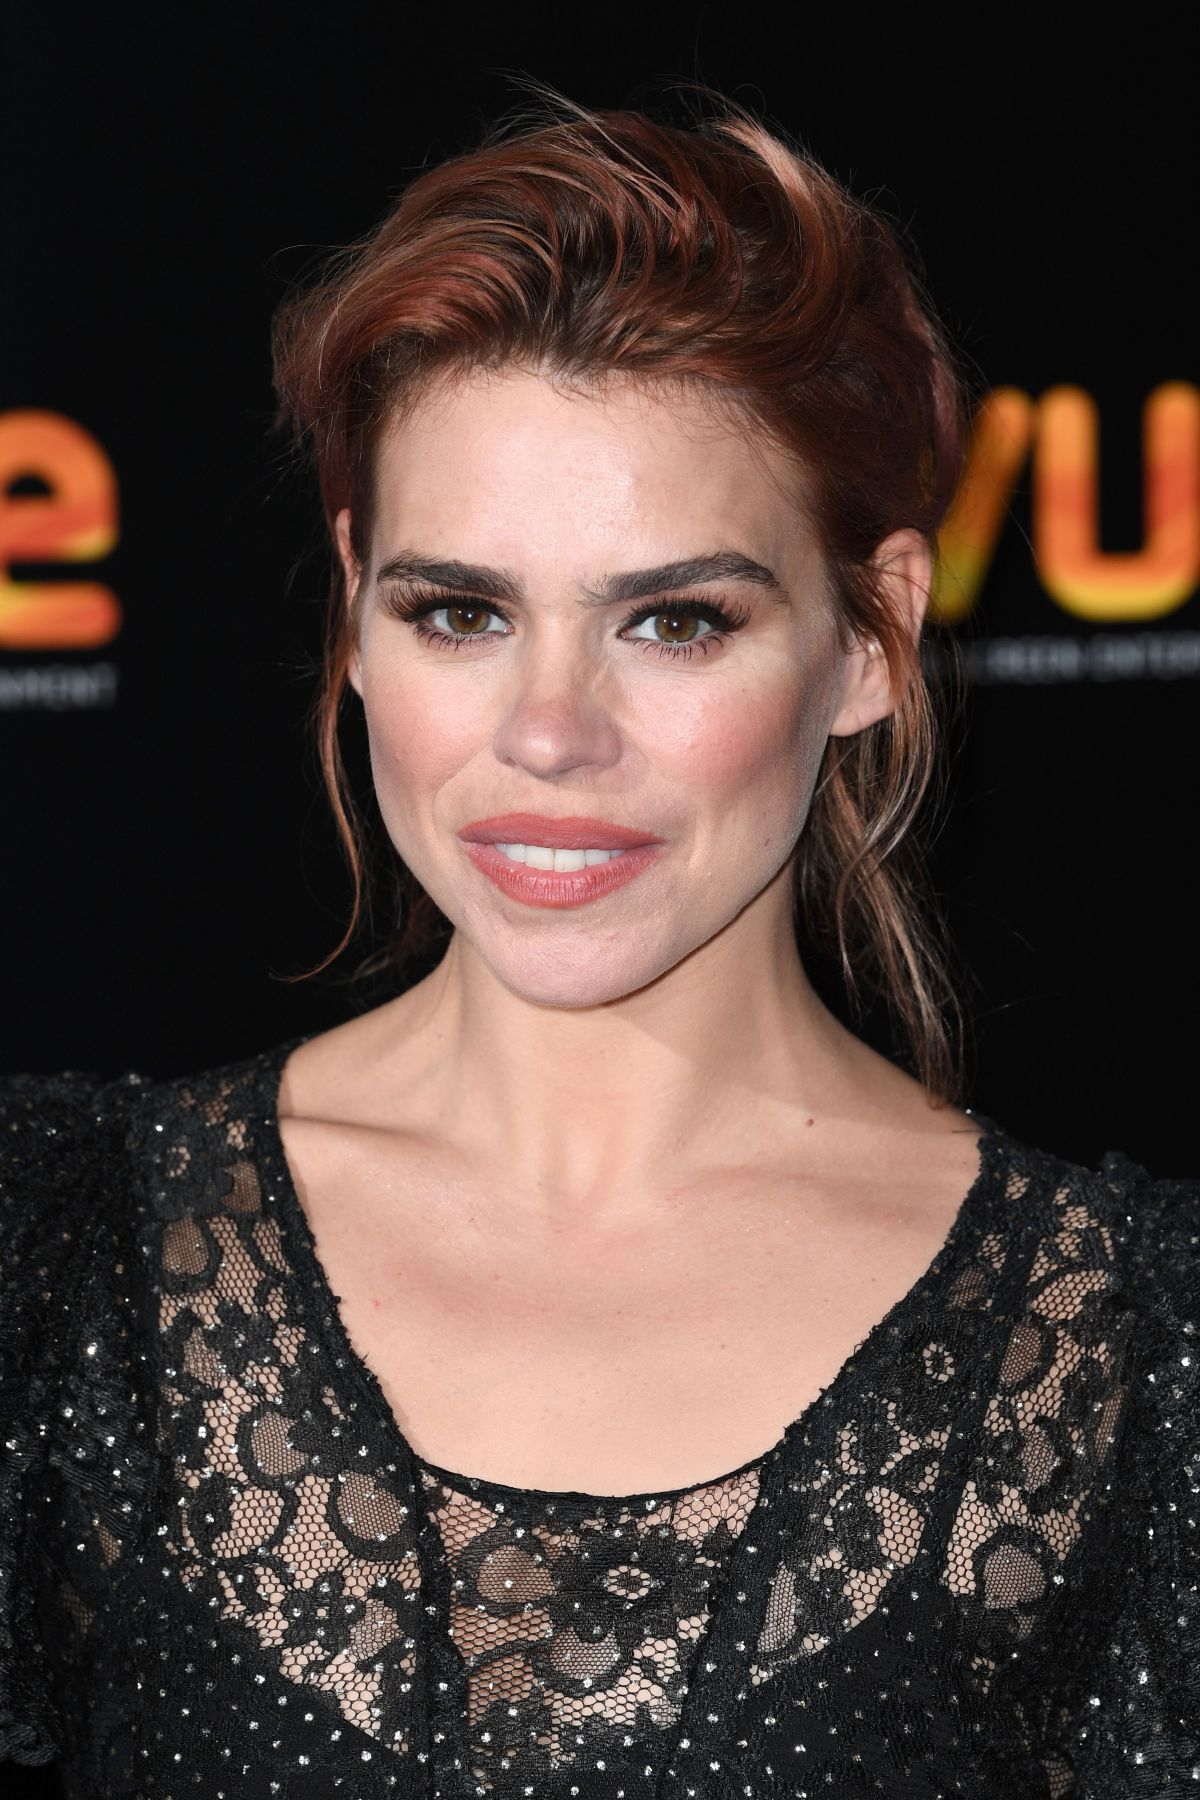 Pictures Billie Piper nude (75 photo), Tits, Paparazzi, Boobs, bra 2018